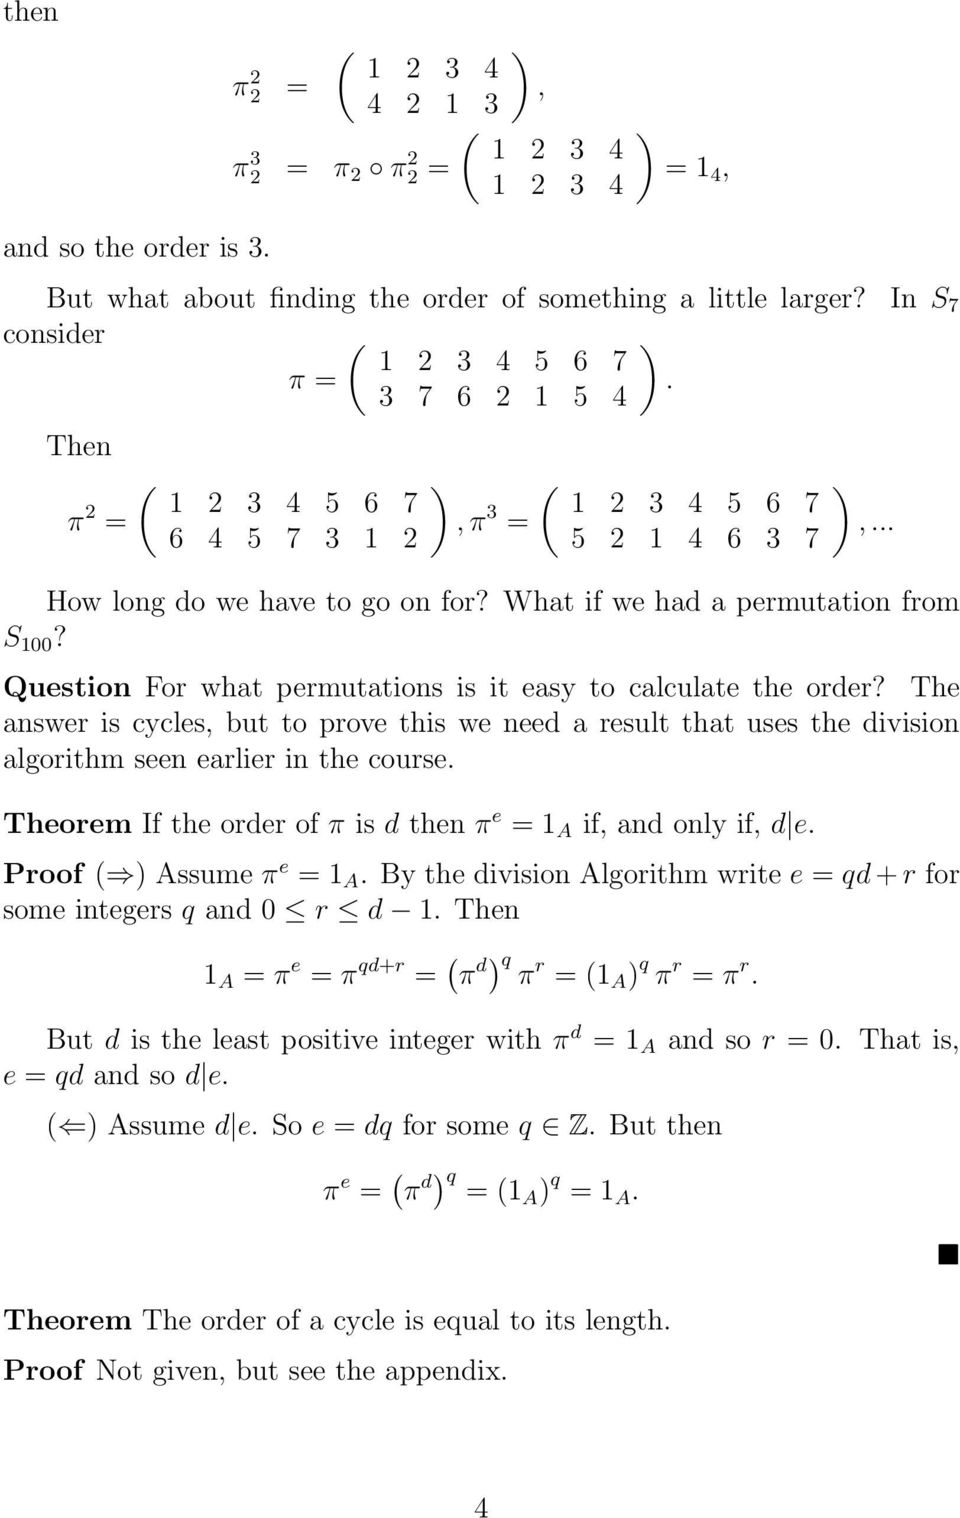 Question For what permutations is it easy to calculate the order? The answer is cycles, but to prove this we need a result that uses the division algorithm seen earlier in the course.